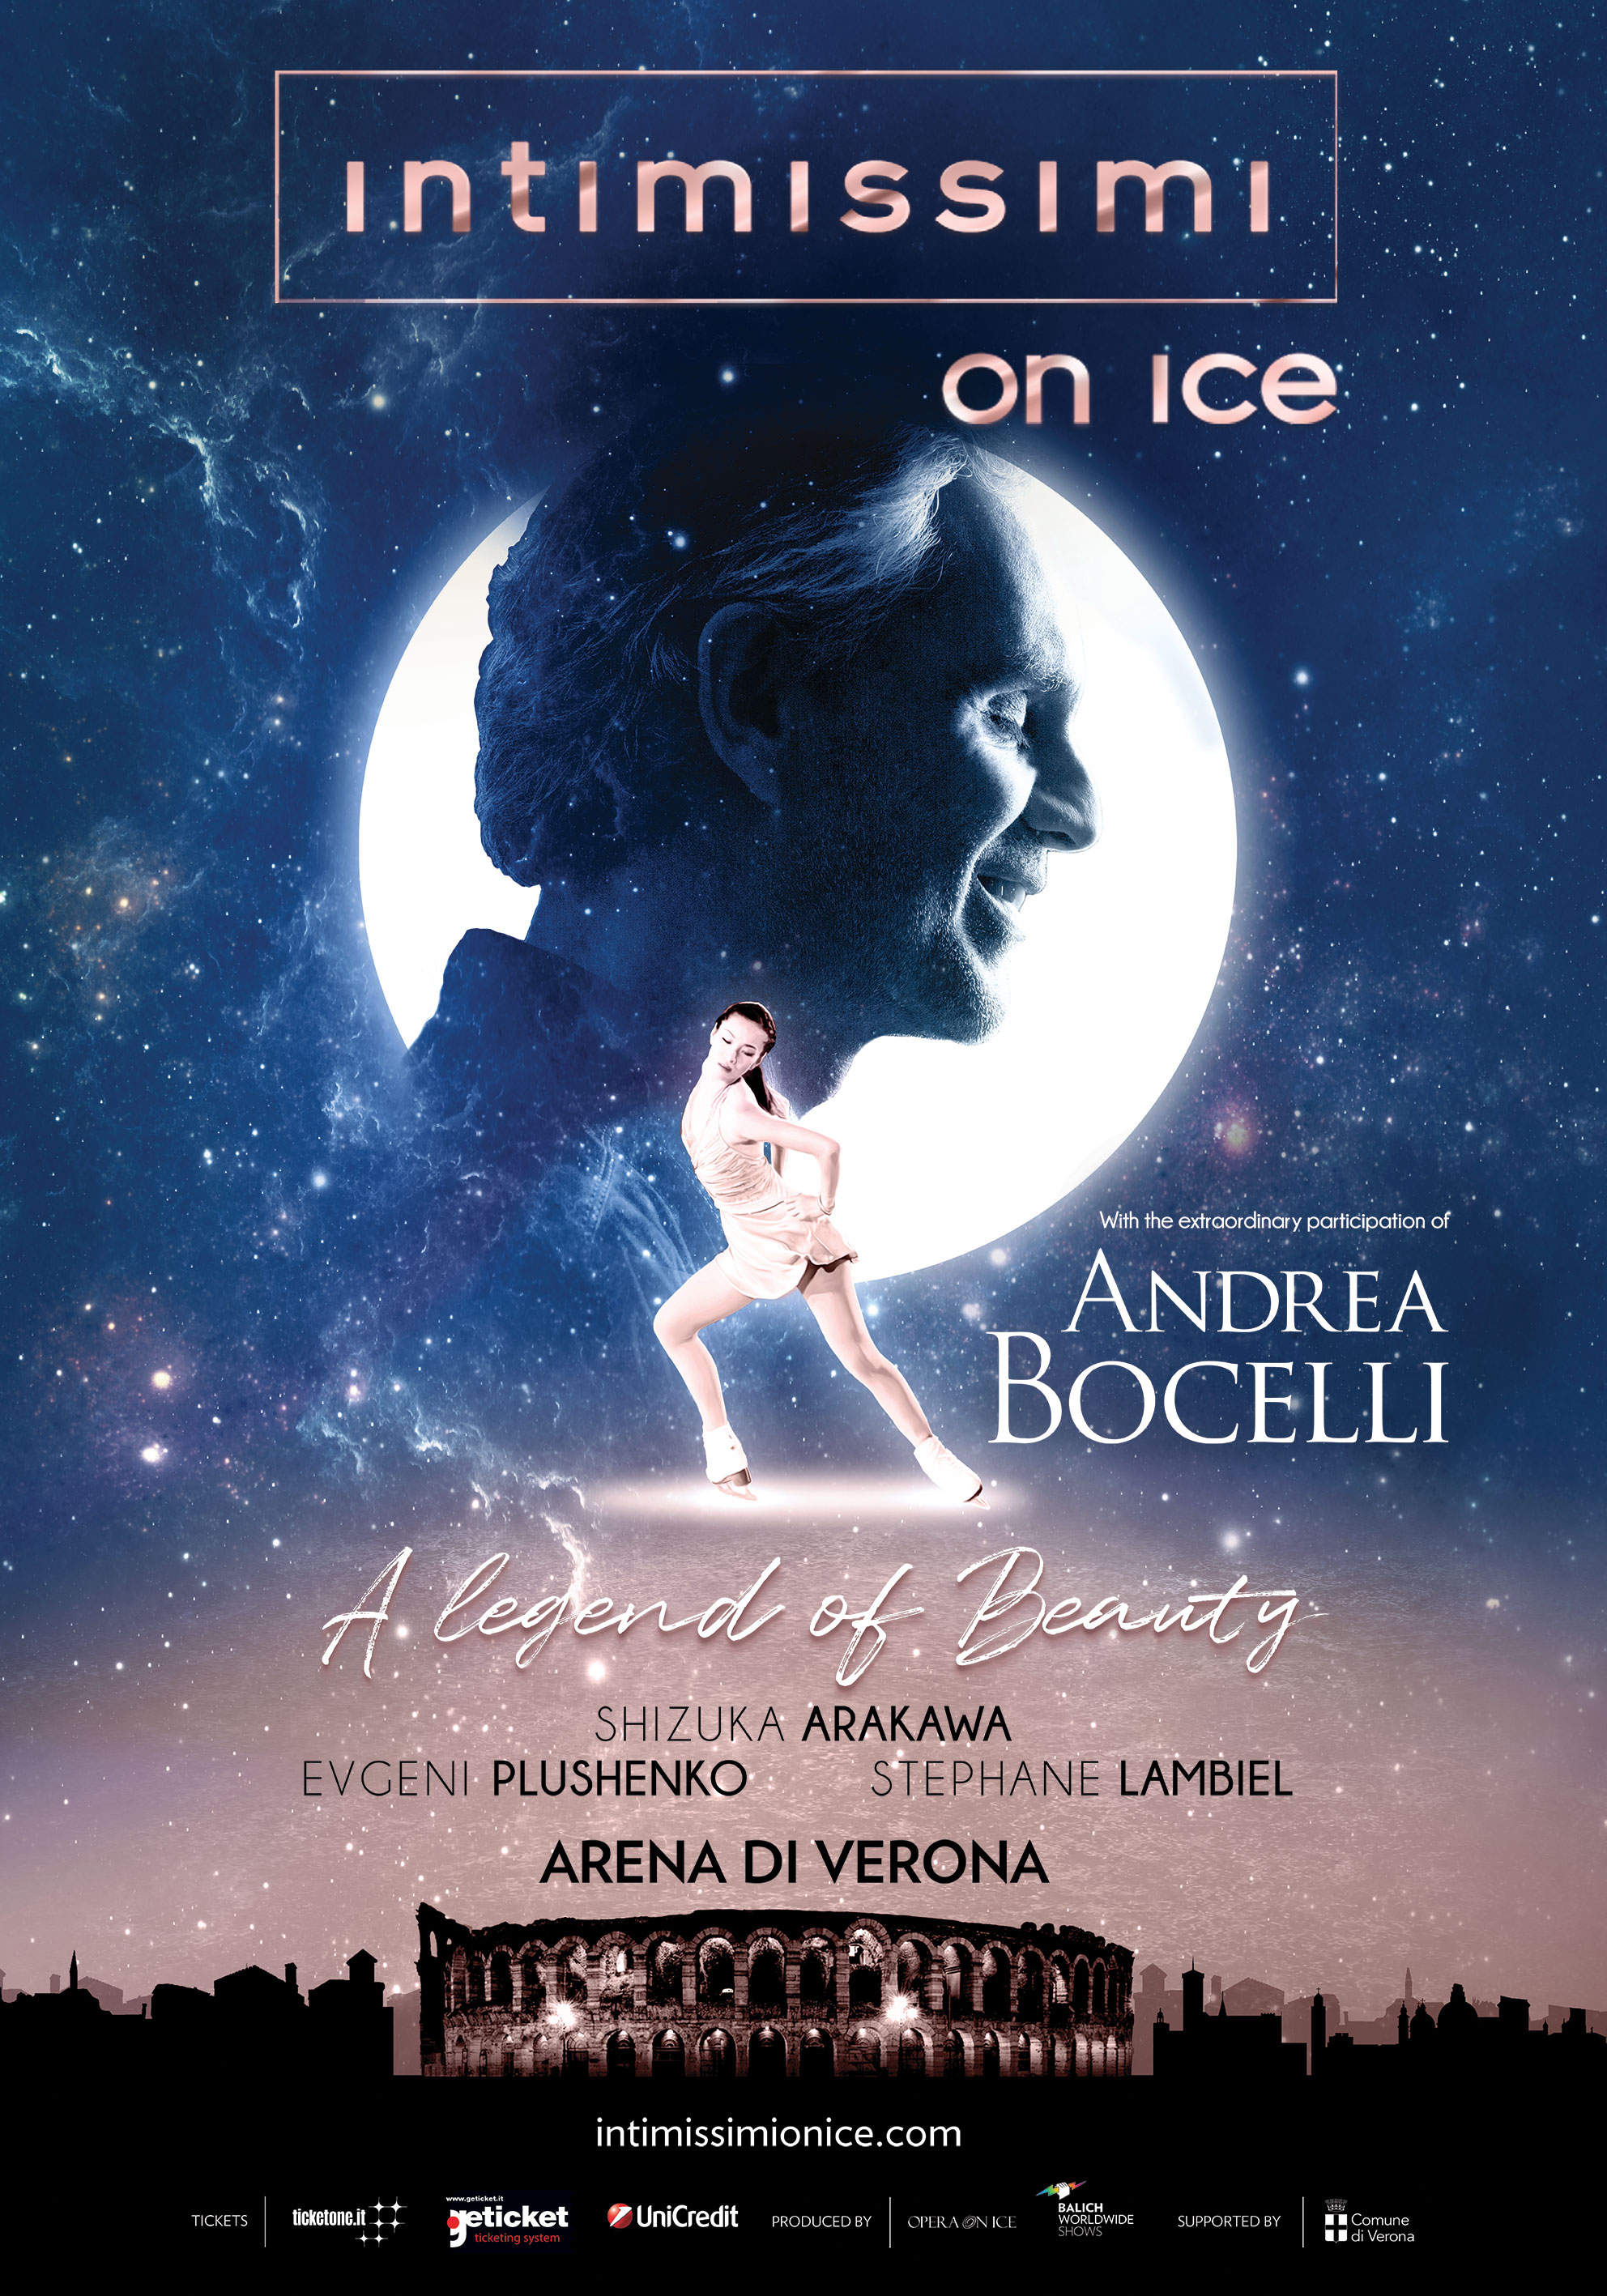 INTIMISSIMI ON ICE WITH ANDREA BOCELLI - Carnaby International Sales & Distribution - UK Film